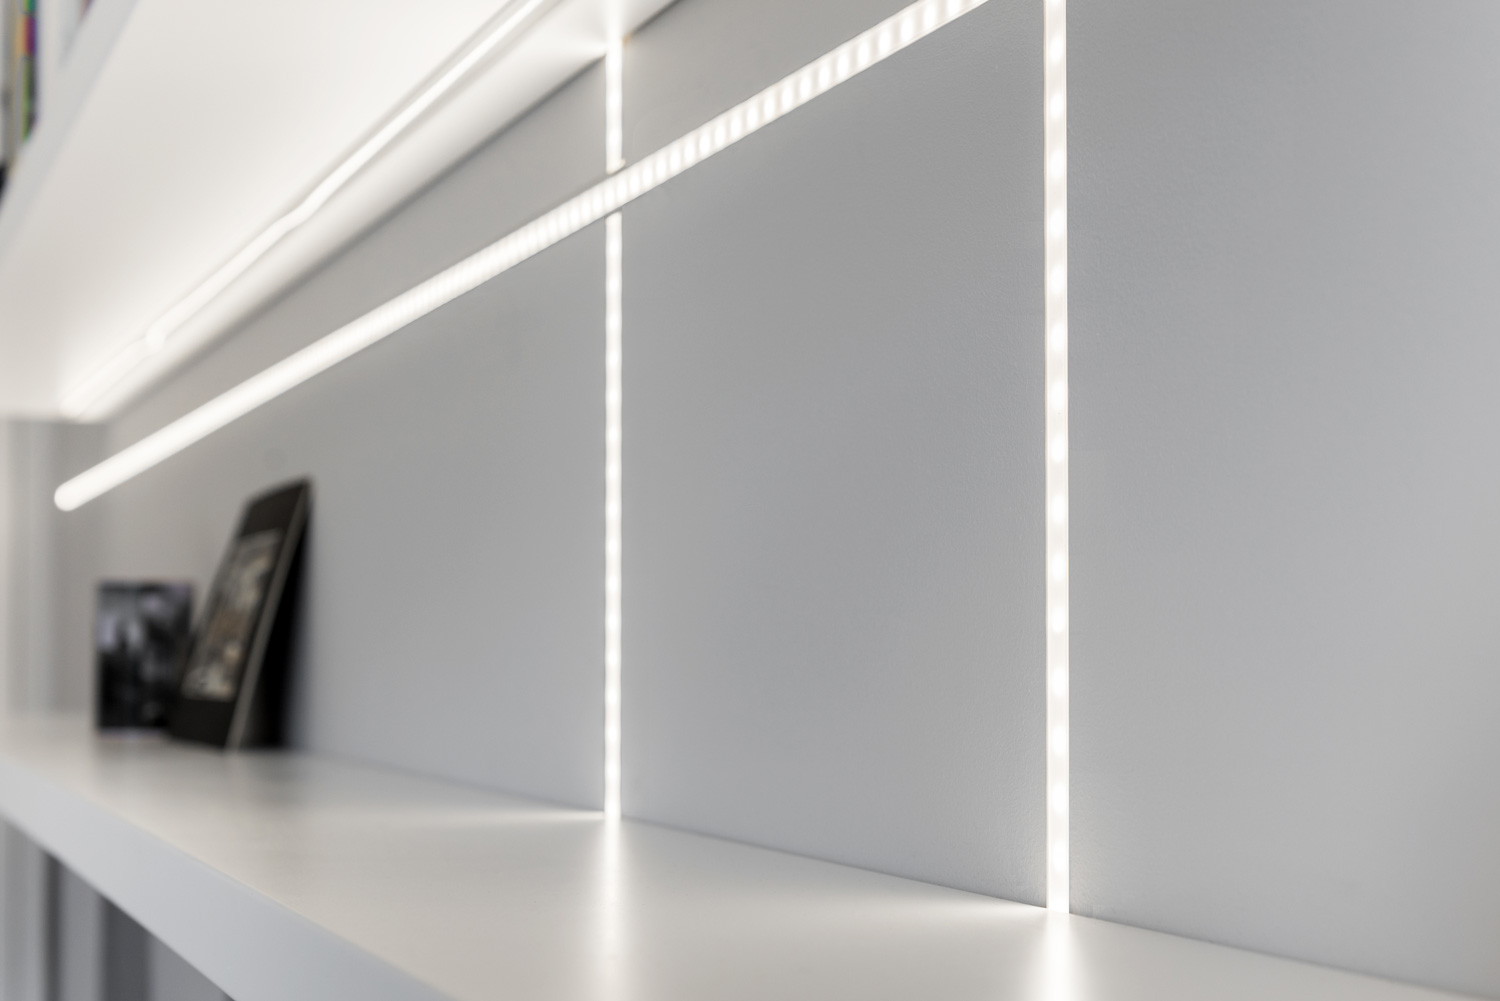 Fresati led per cartongesso curvo panel srl